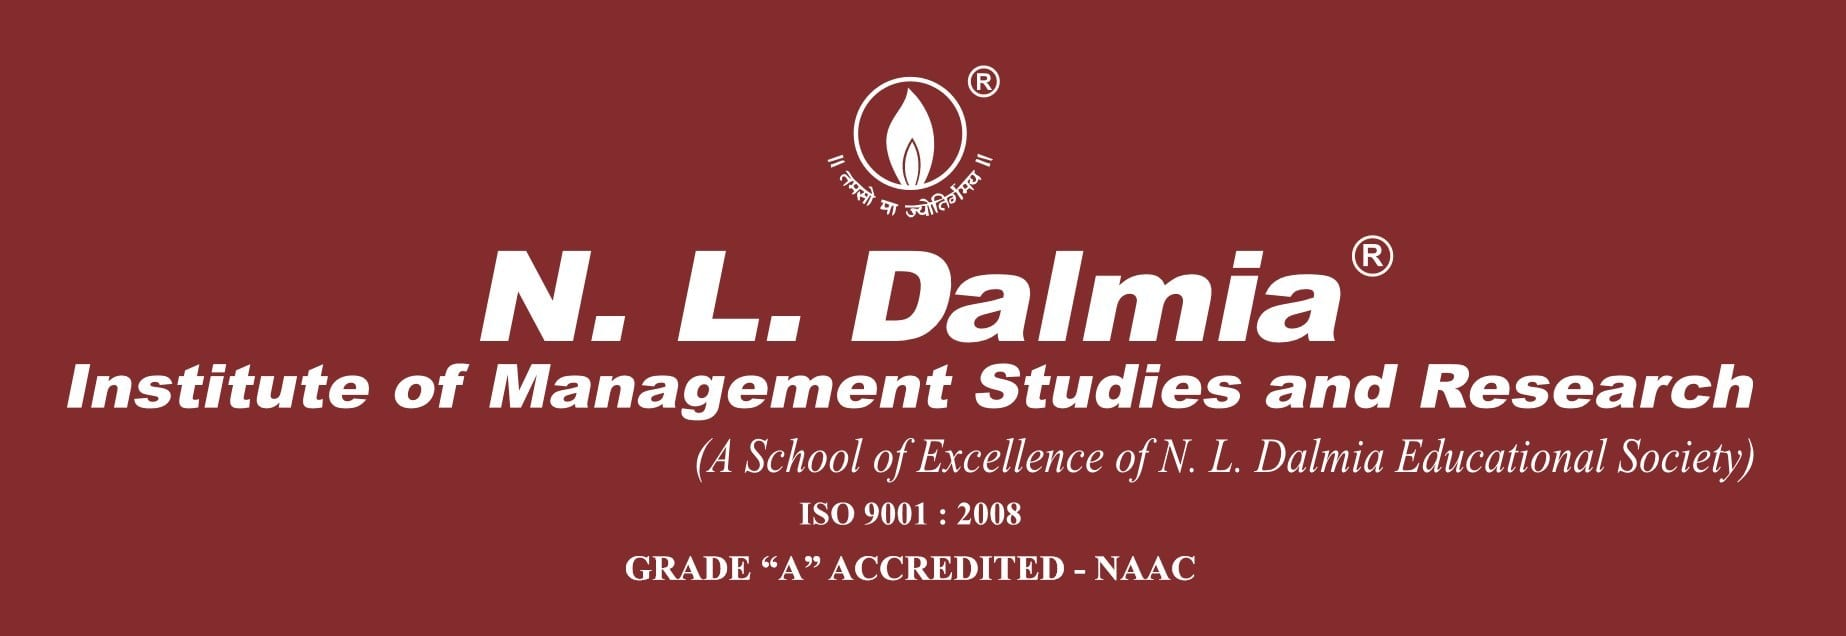 N L Dalmia partners up with the Global Analytics Leader – SAS Institute Pvt. Ltd. for Post Graduate Programs in Big Data and Advanced Analytics